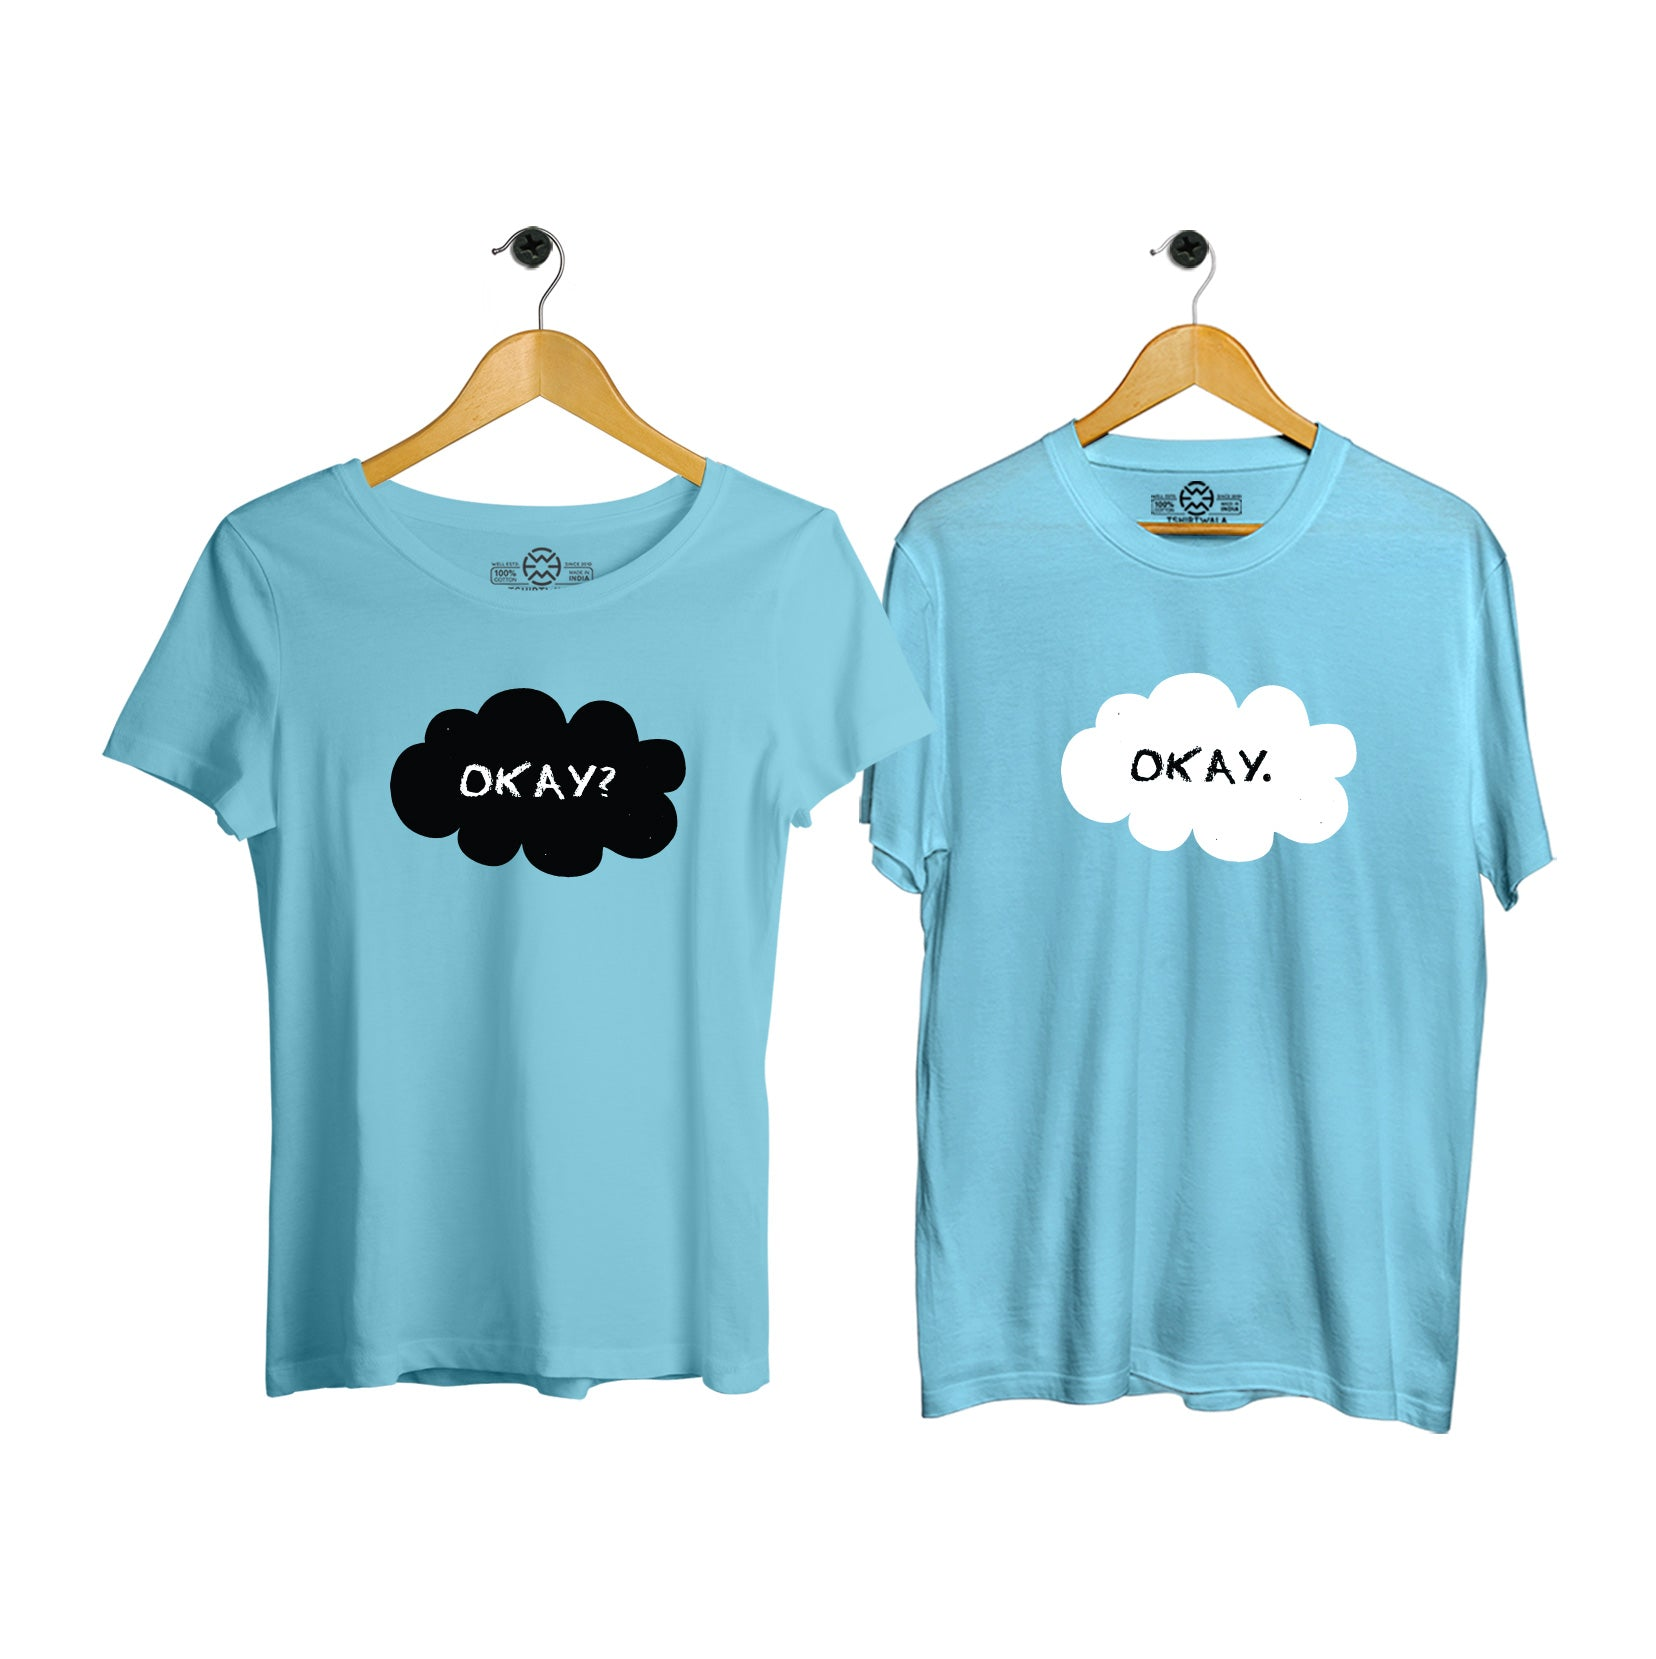 Okay? Okay. Couple T-shirt